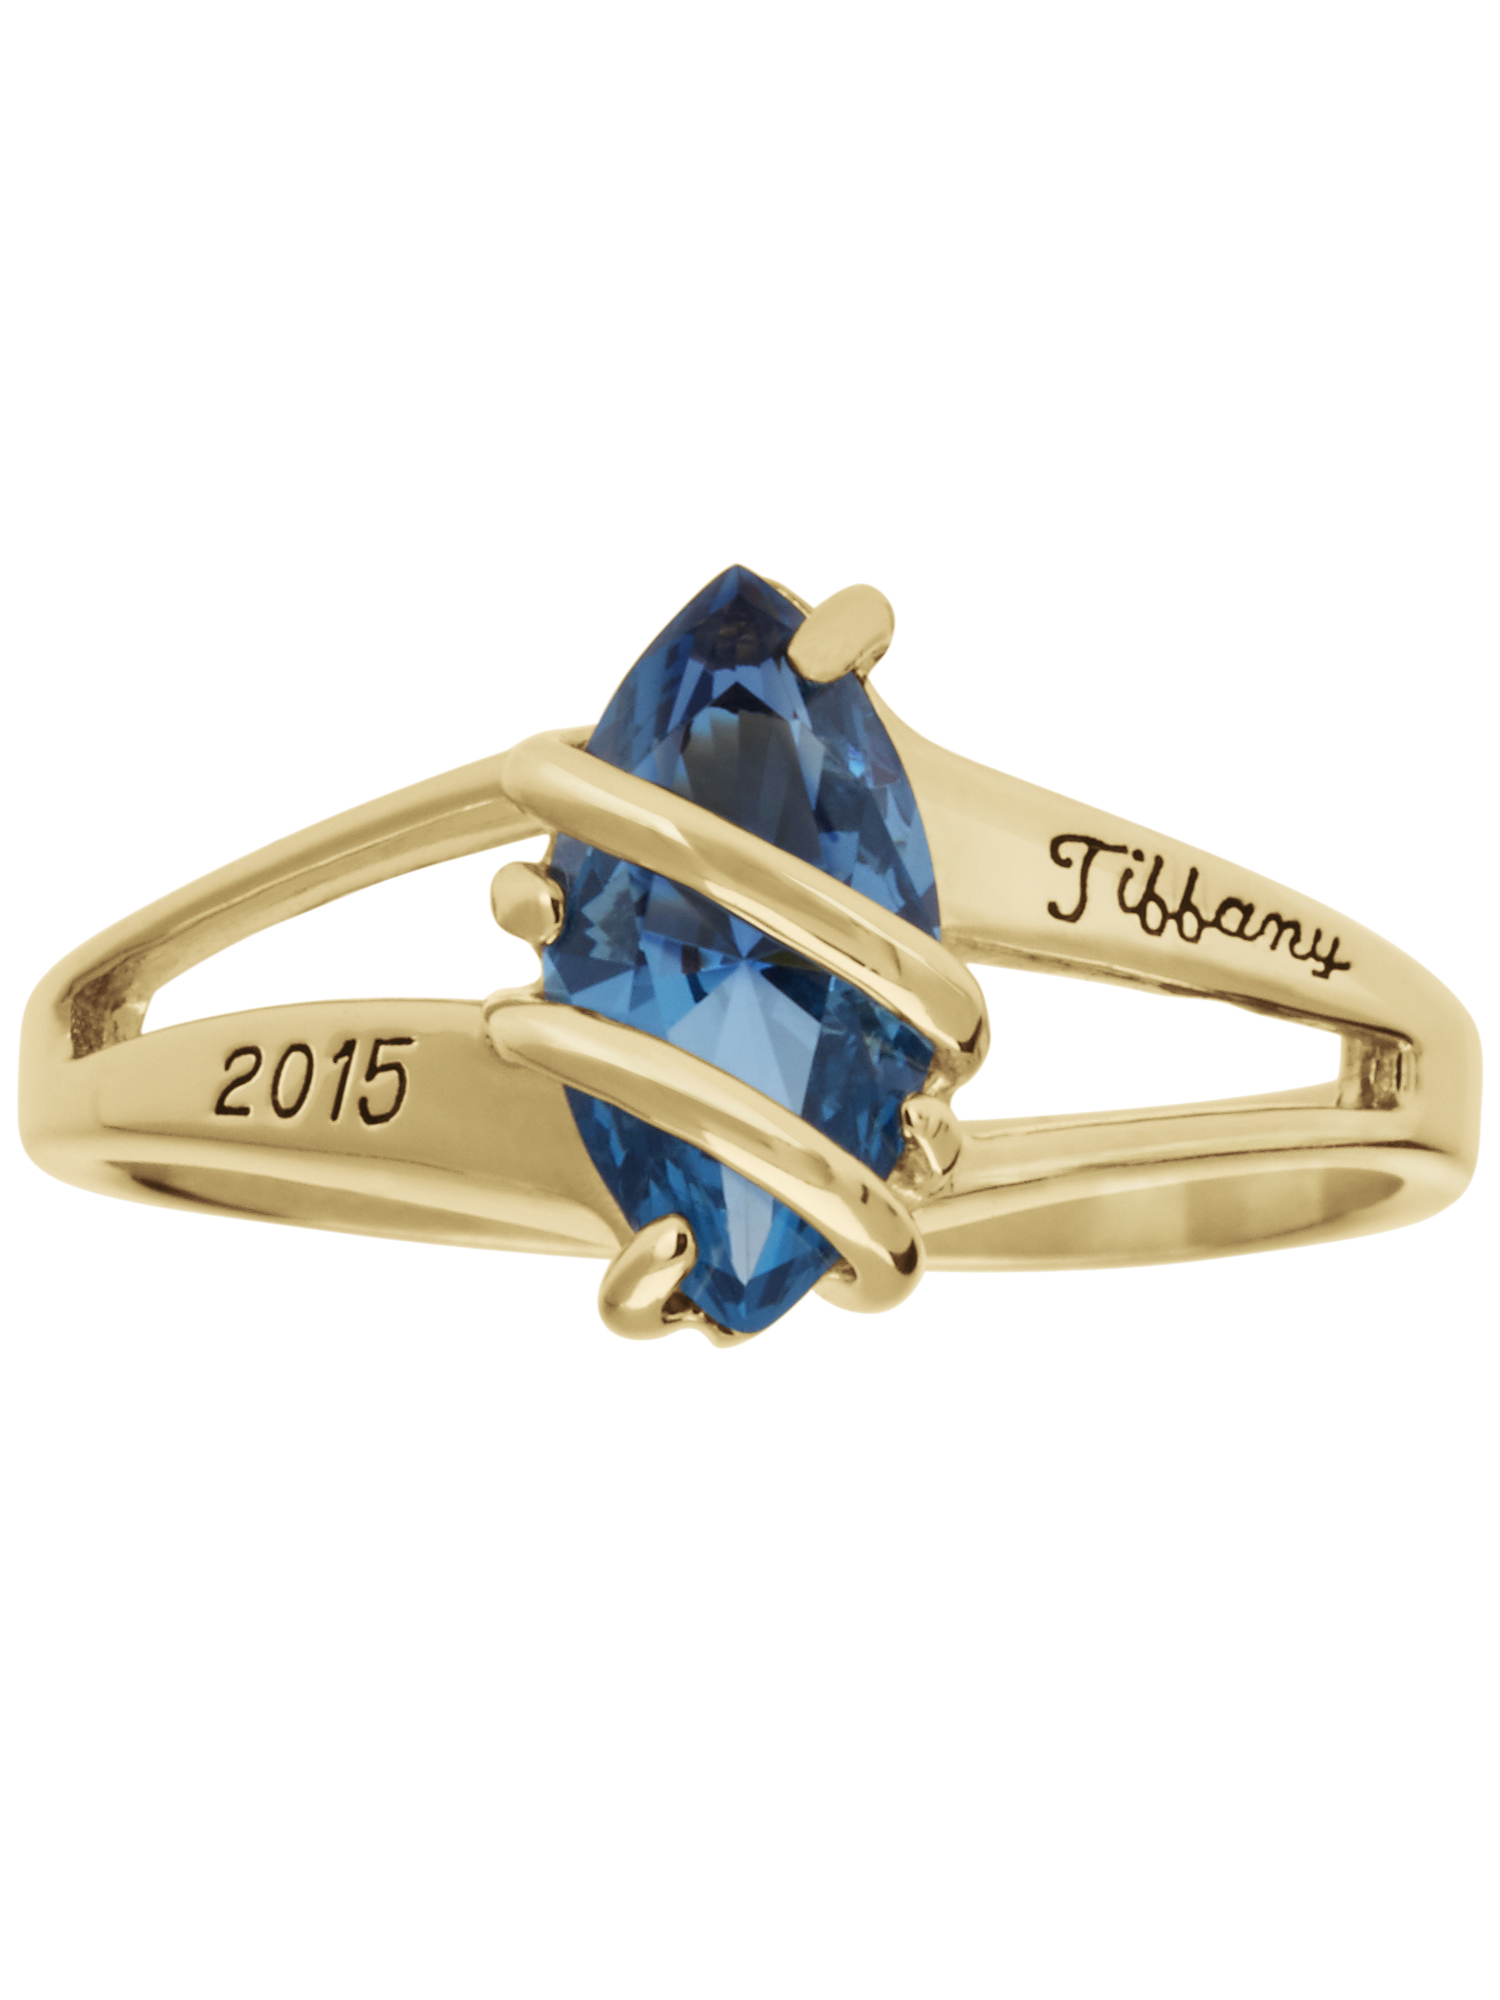 Keepsake Personalized Family Jewelry Women's Mystique Class Ring available in Valadium, Silver Plus, 10kt Yellow Gold